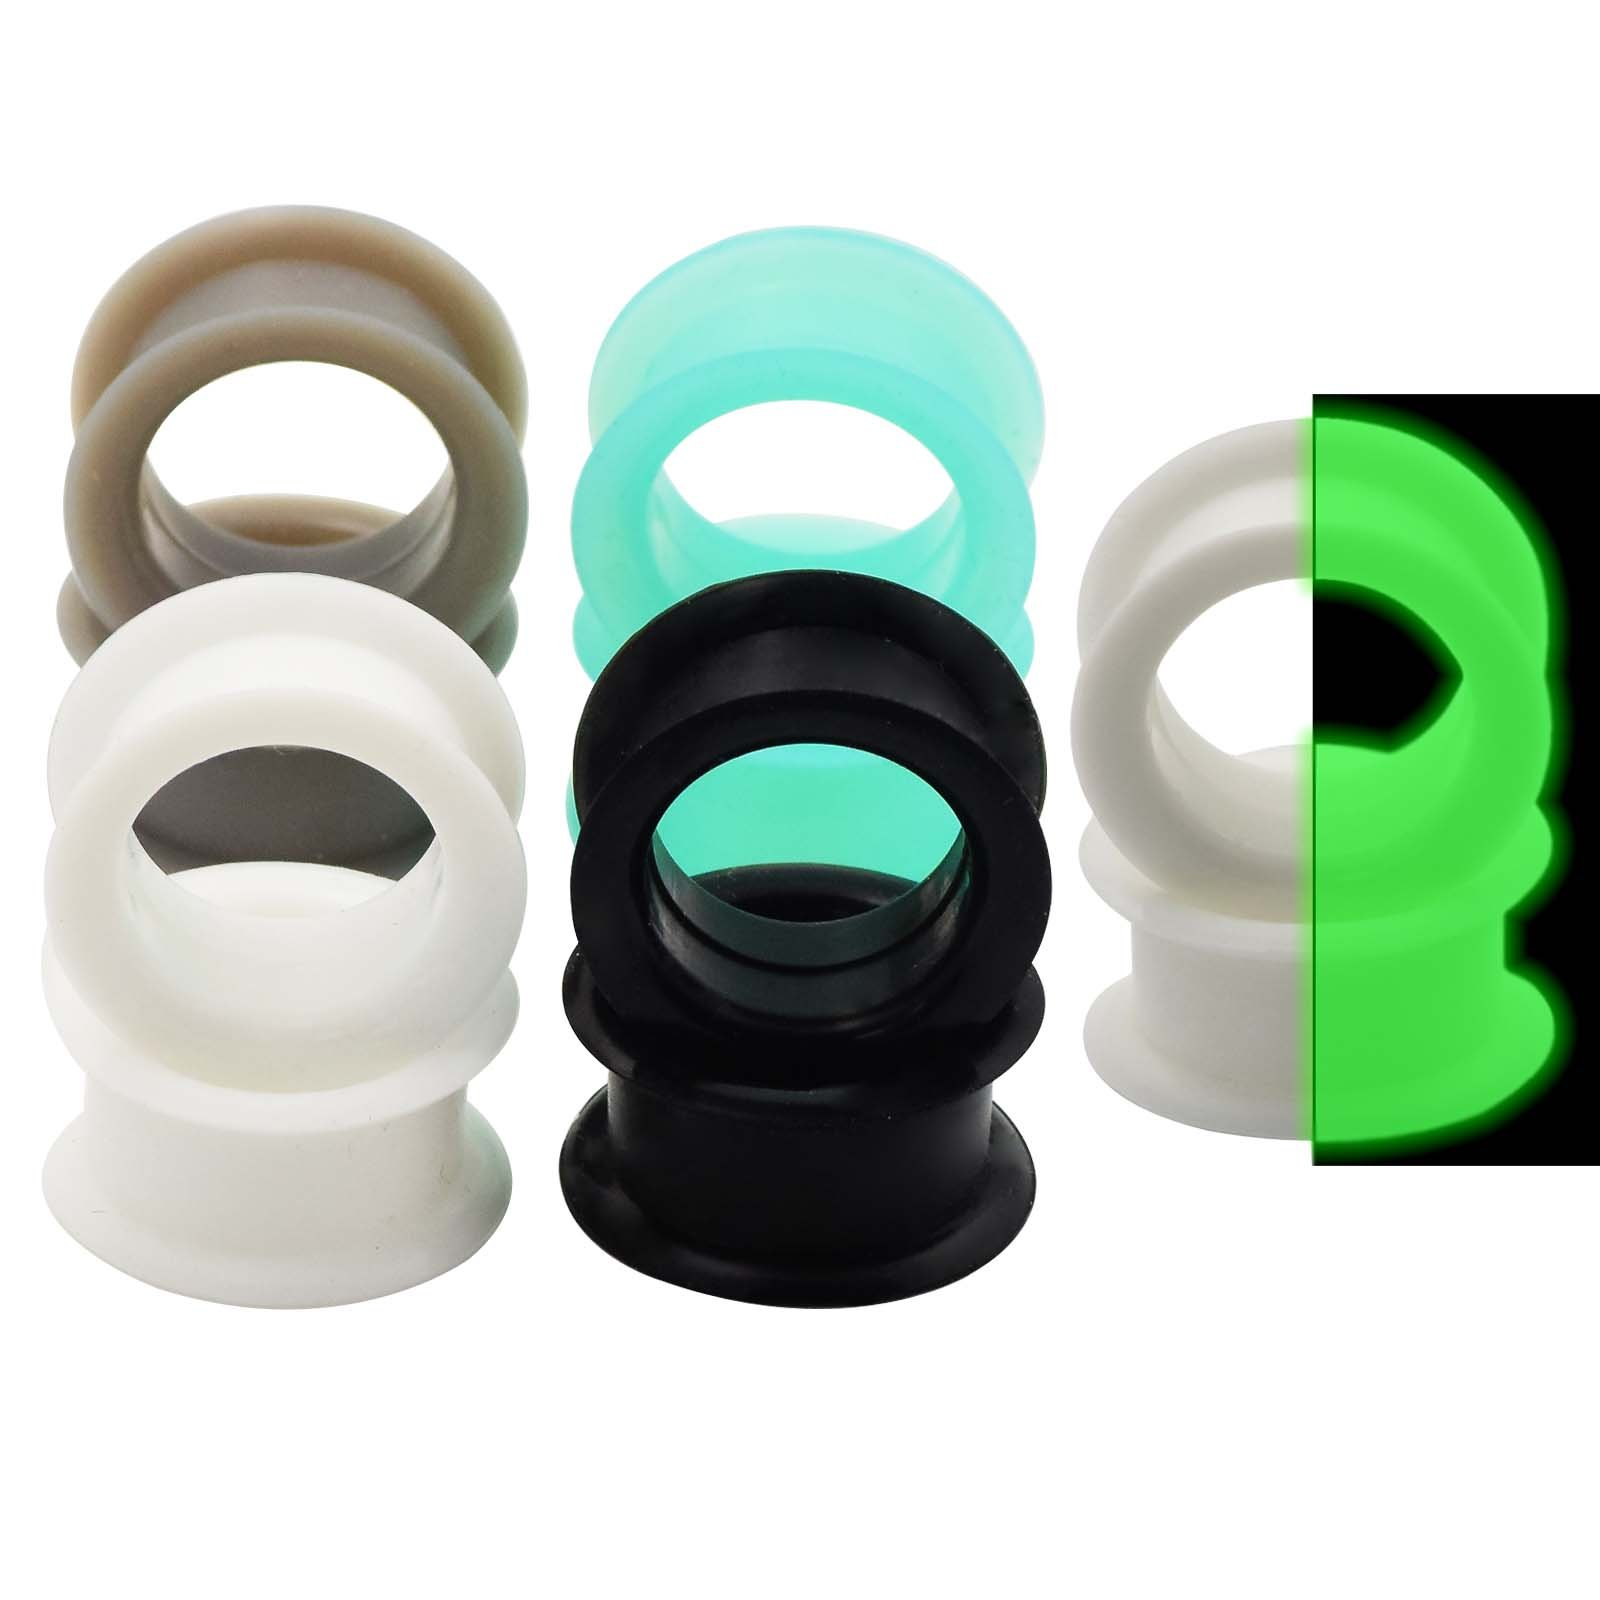 """Qmcandy 5 Pairs Mixed Colors Flexible Silicone Flesh Tunnels 8g-1"""" Hollow Ear Expander"""